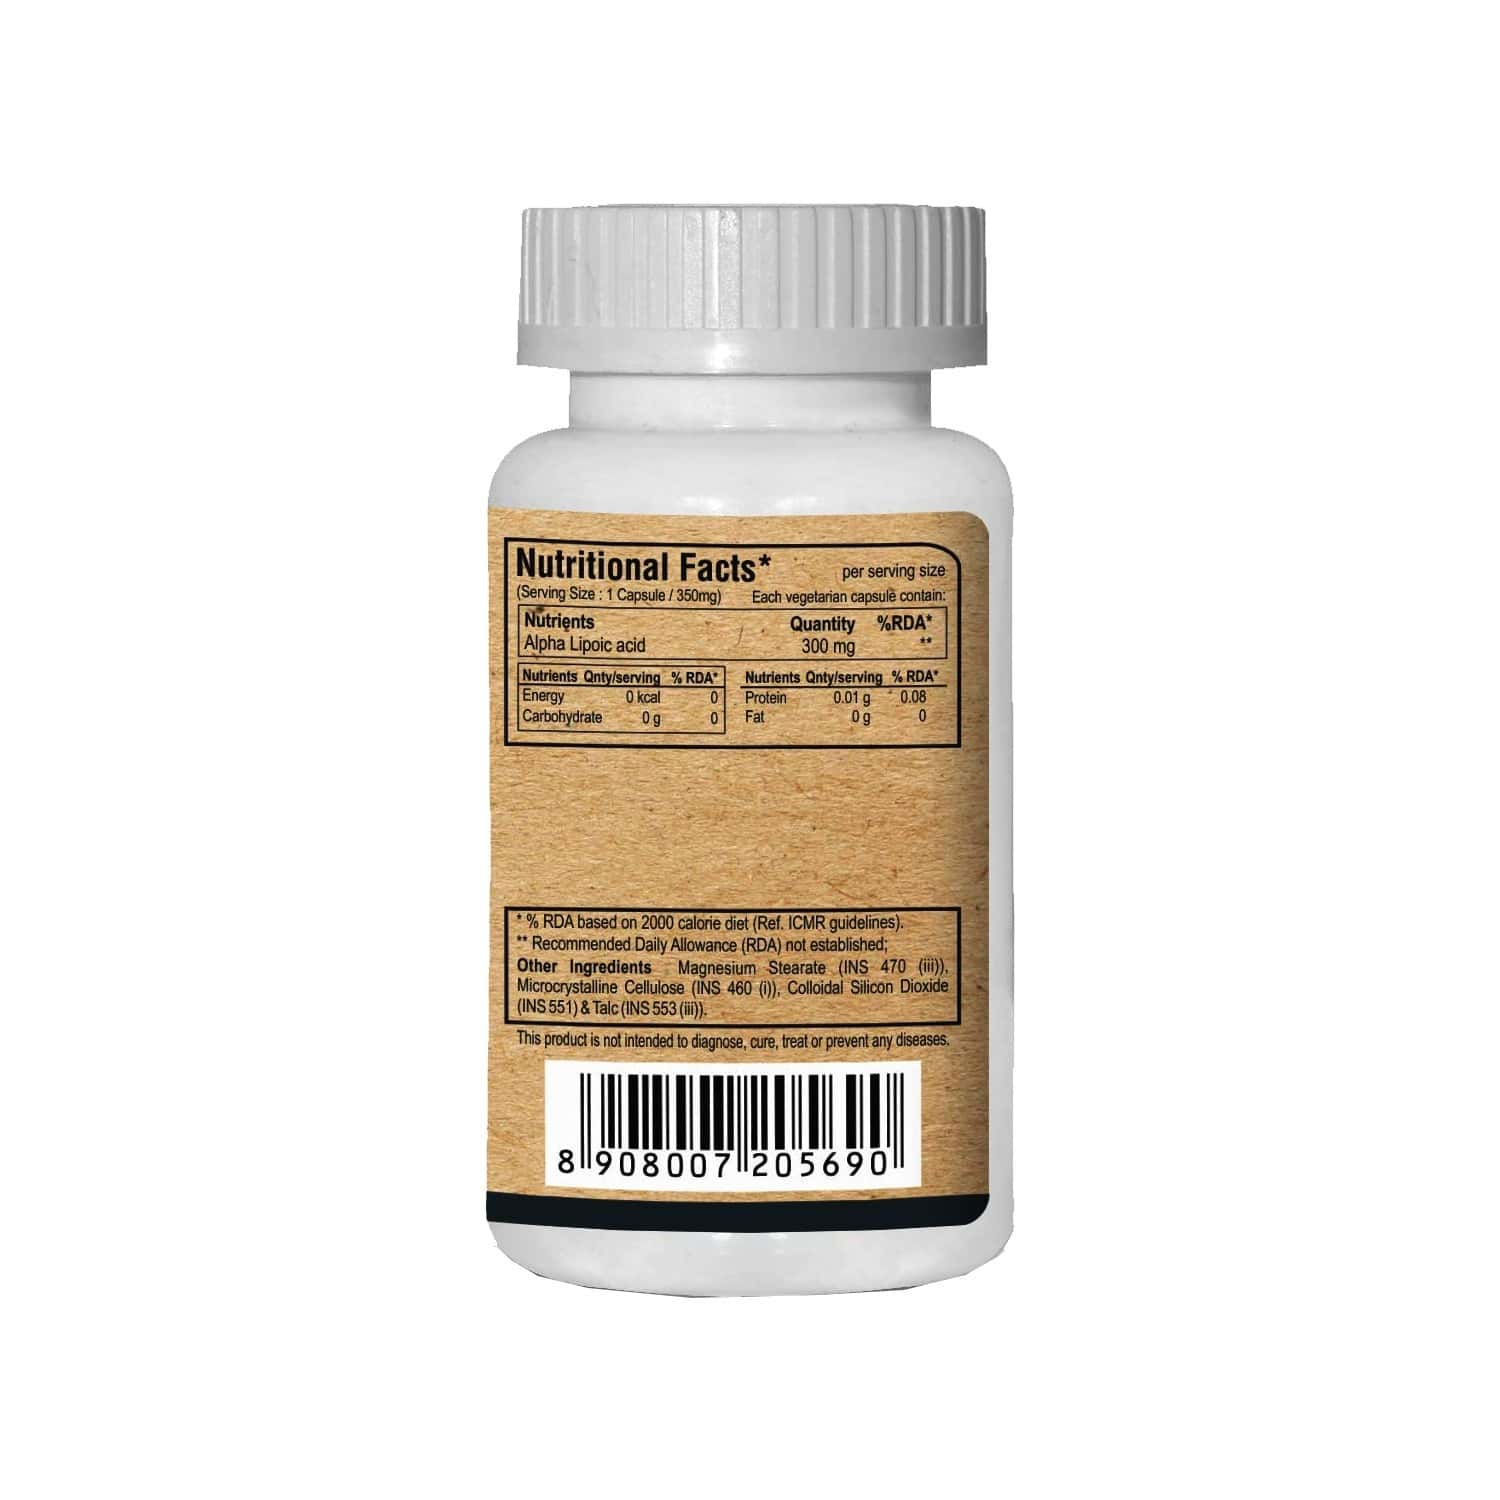 Pure Nutrition Alpha Lipoic Acid (optimum Anti-oxidant Support) - 60 Caps